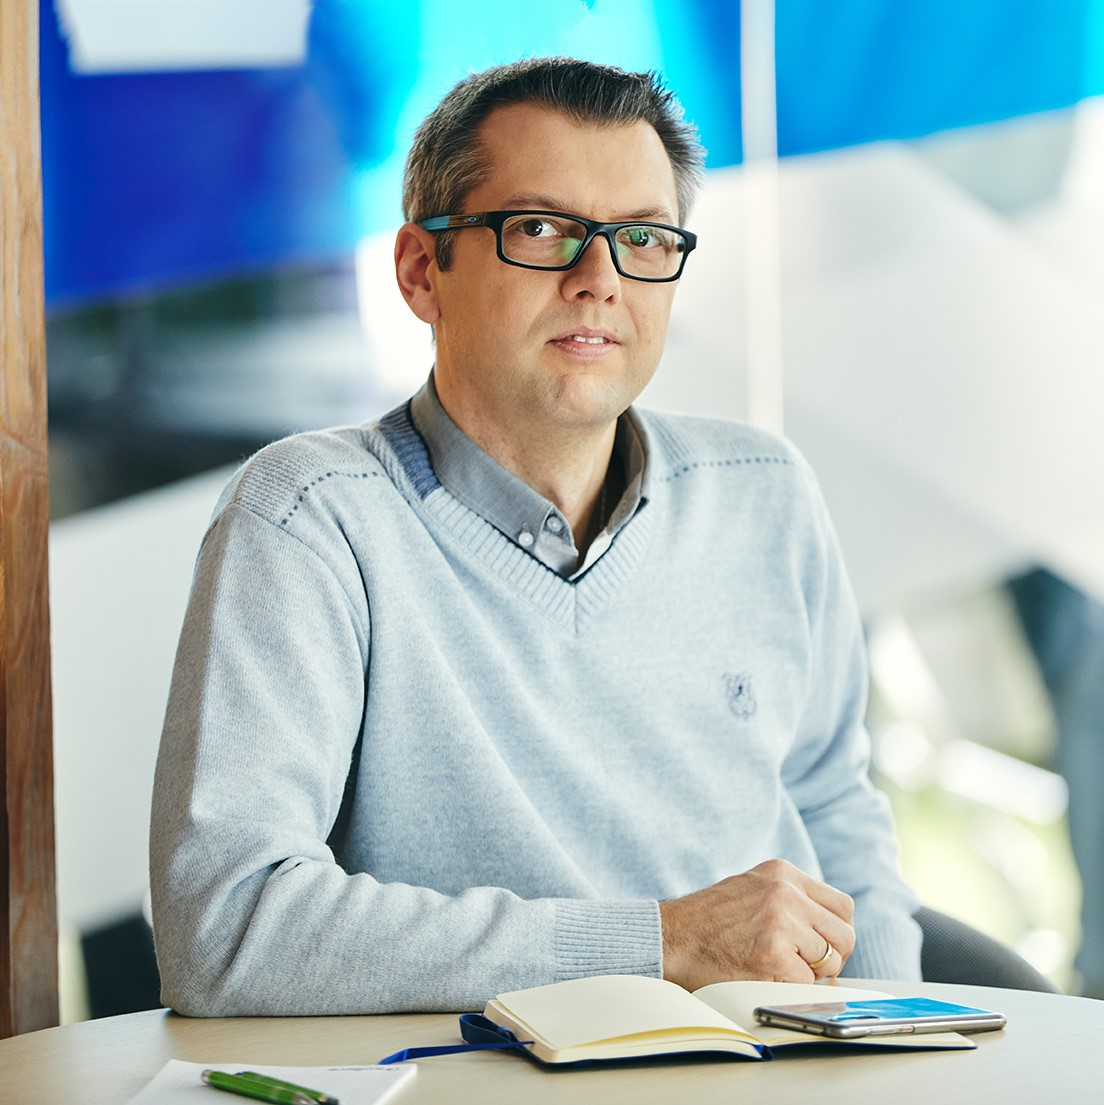 Paweł – IT Architect, experience in local and abroad projects